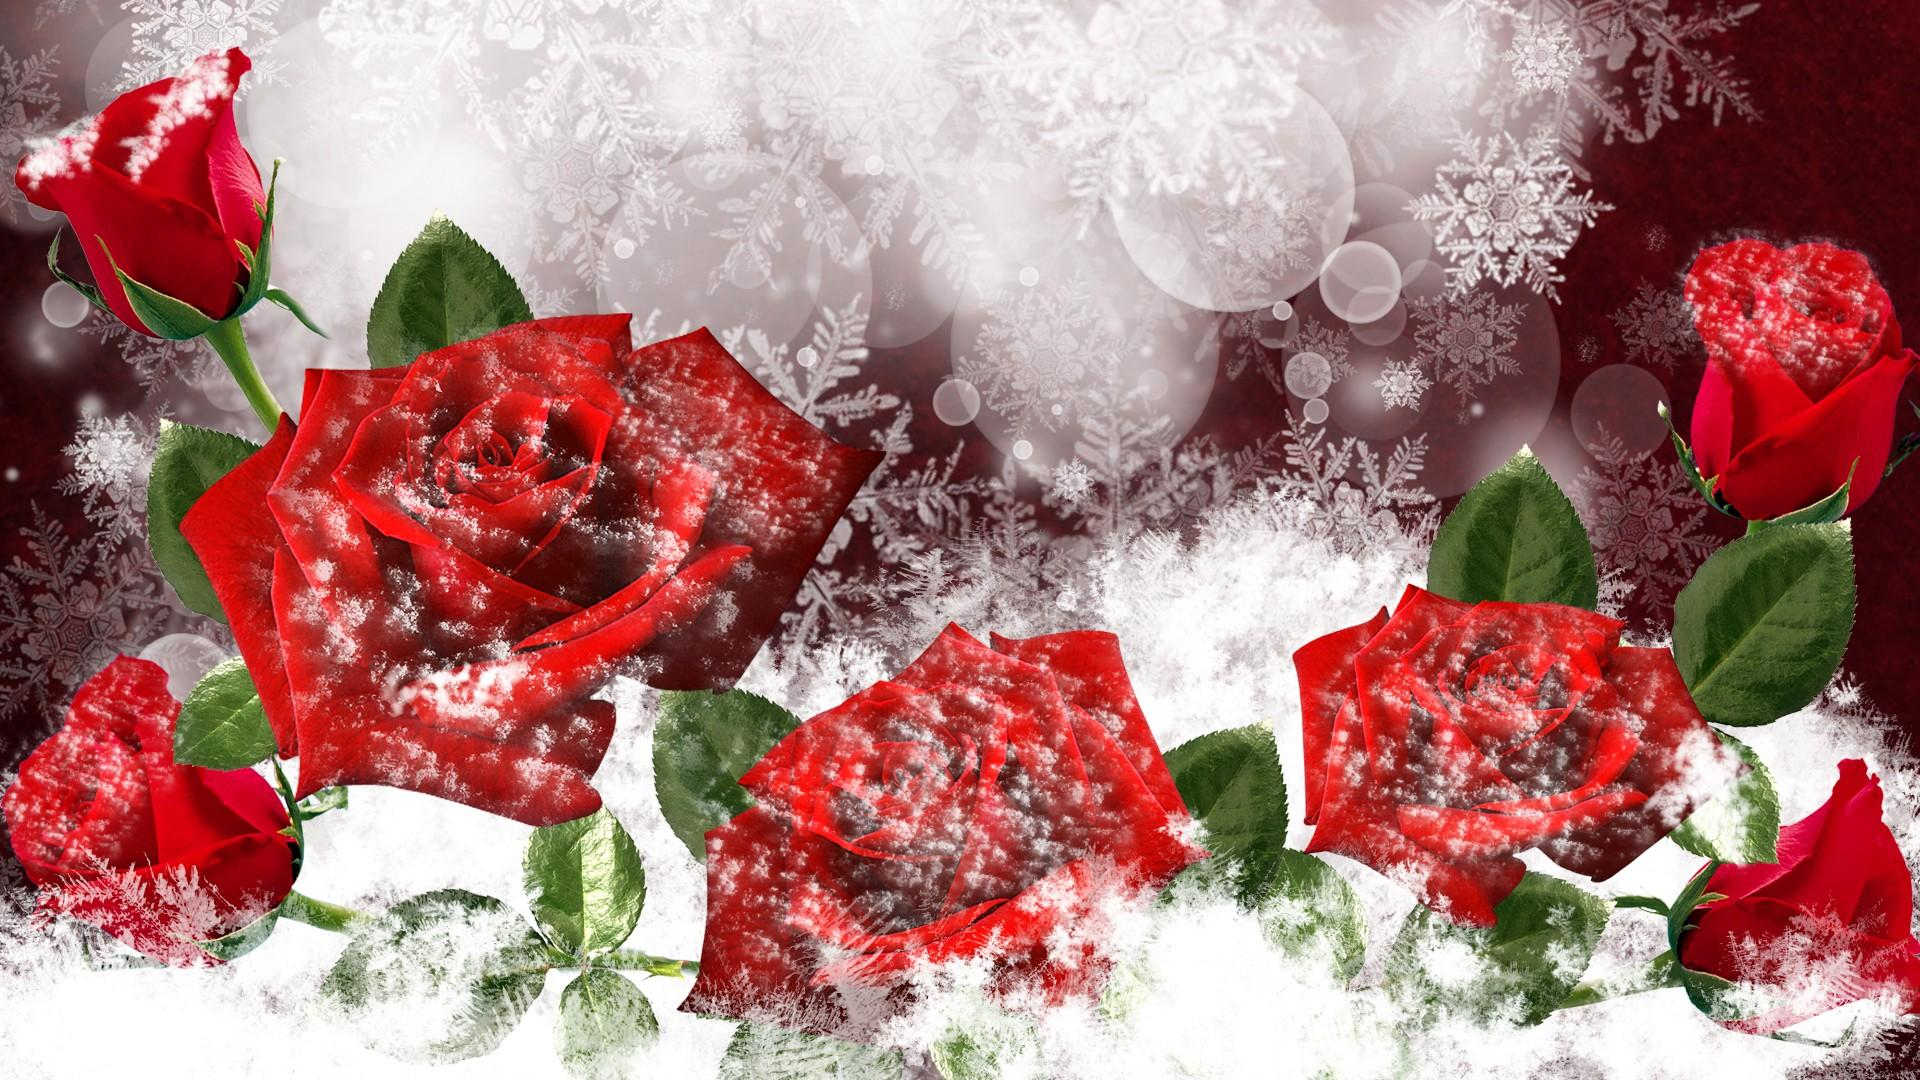 Wonderful red frozen roses hd winter wallpaper - Rose in snow wallpaper ...